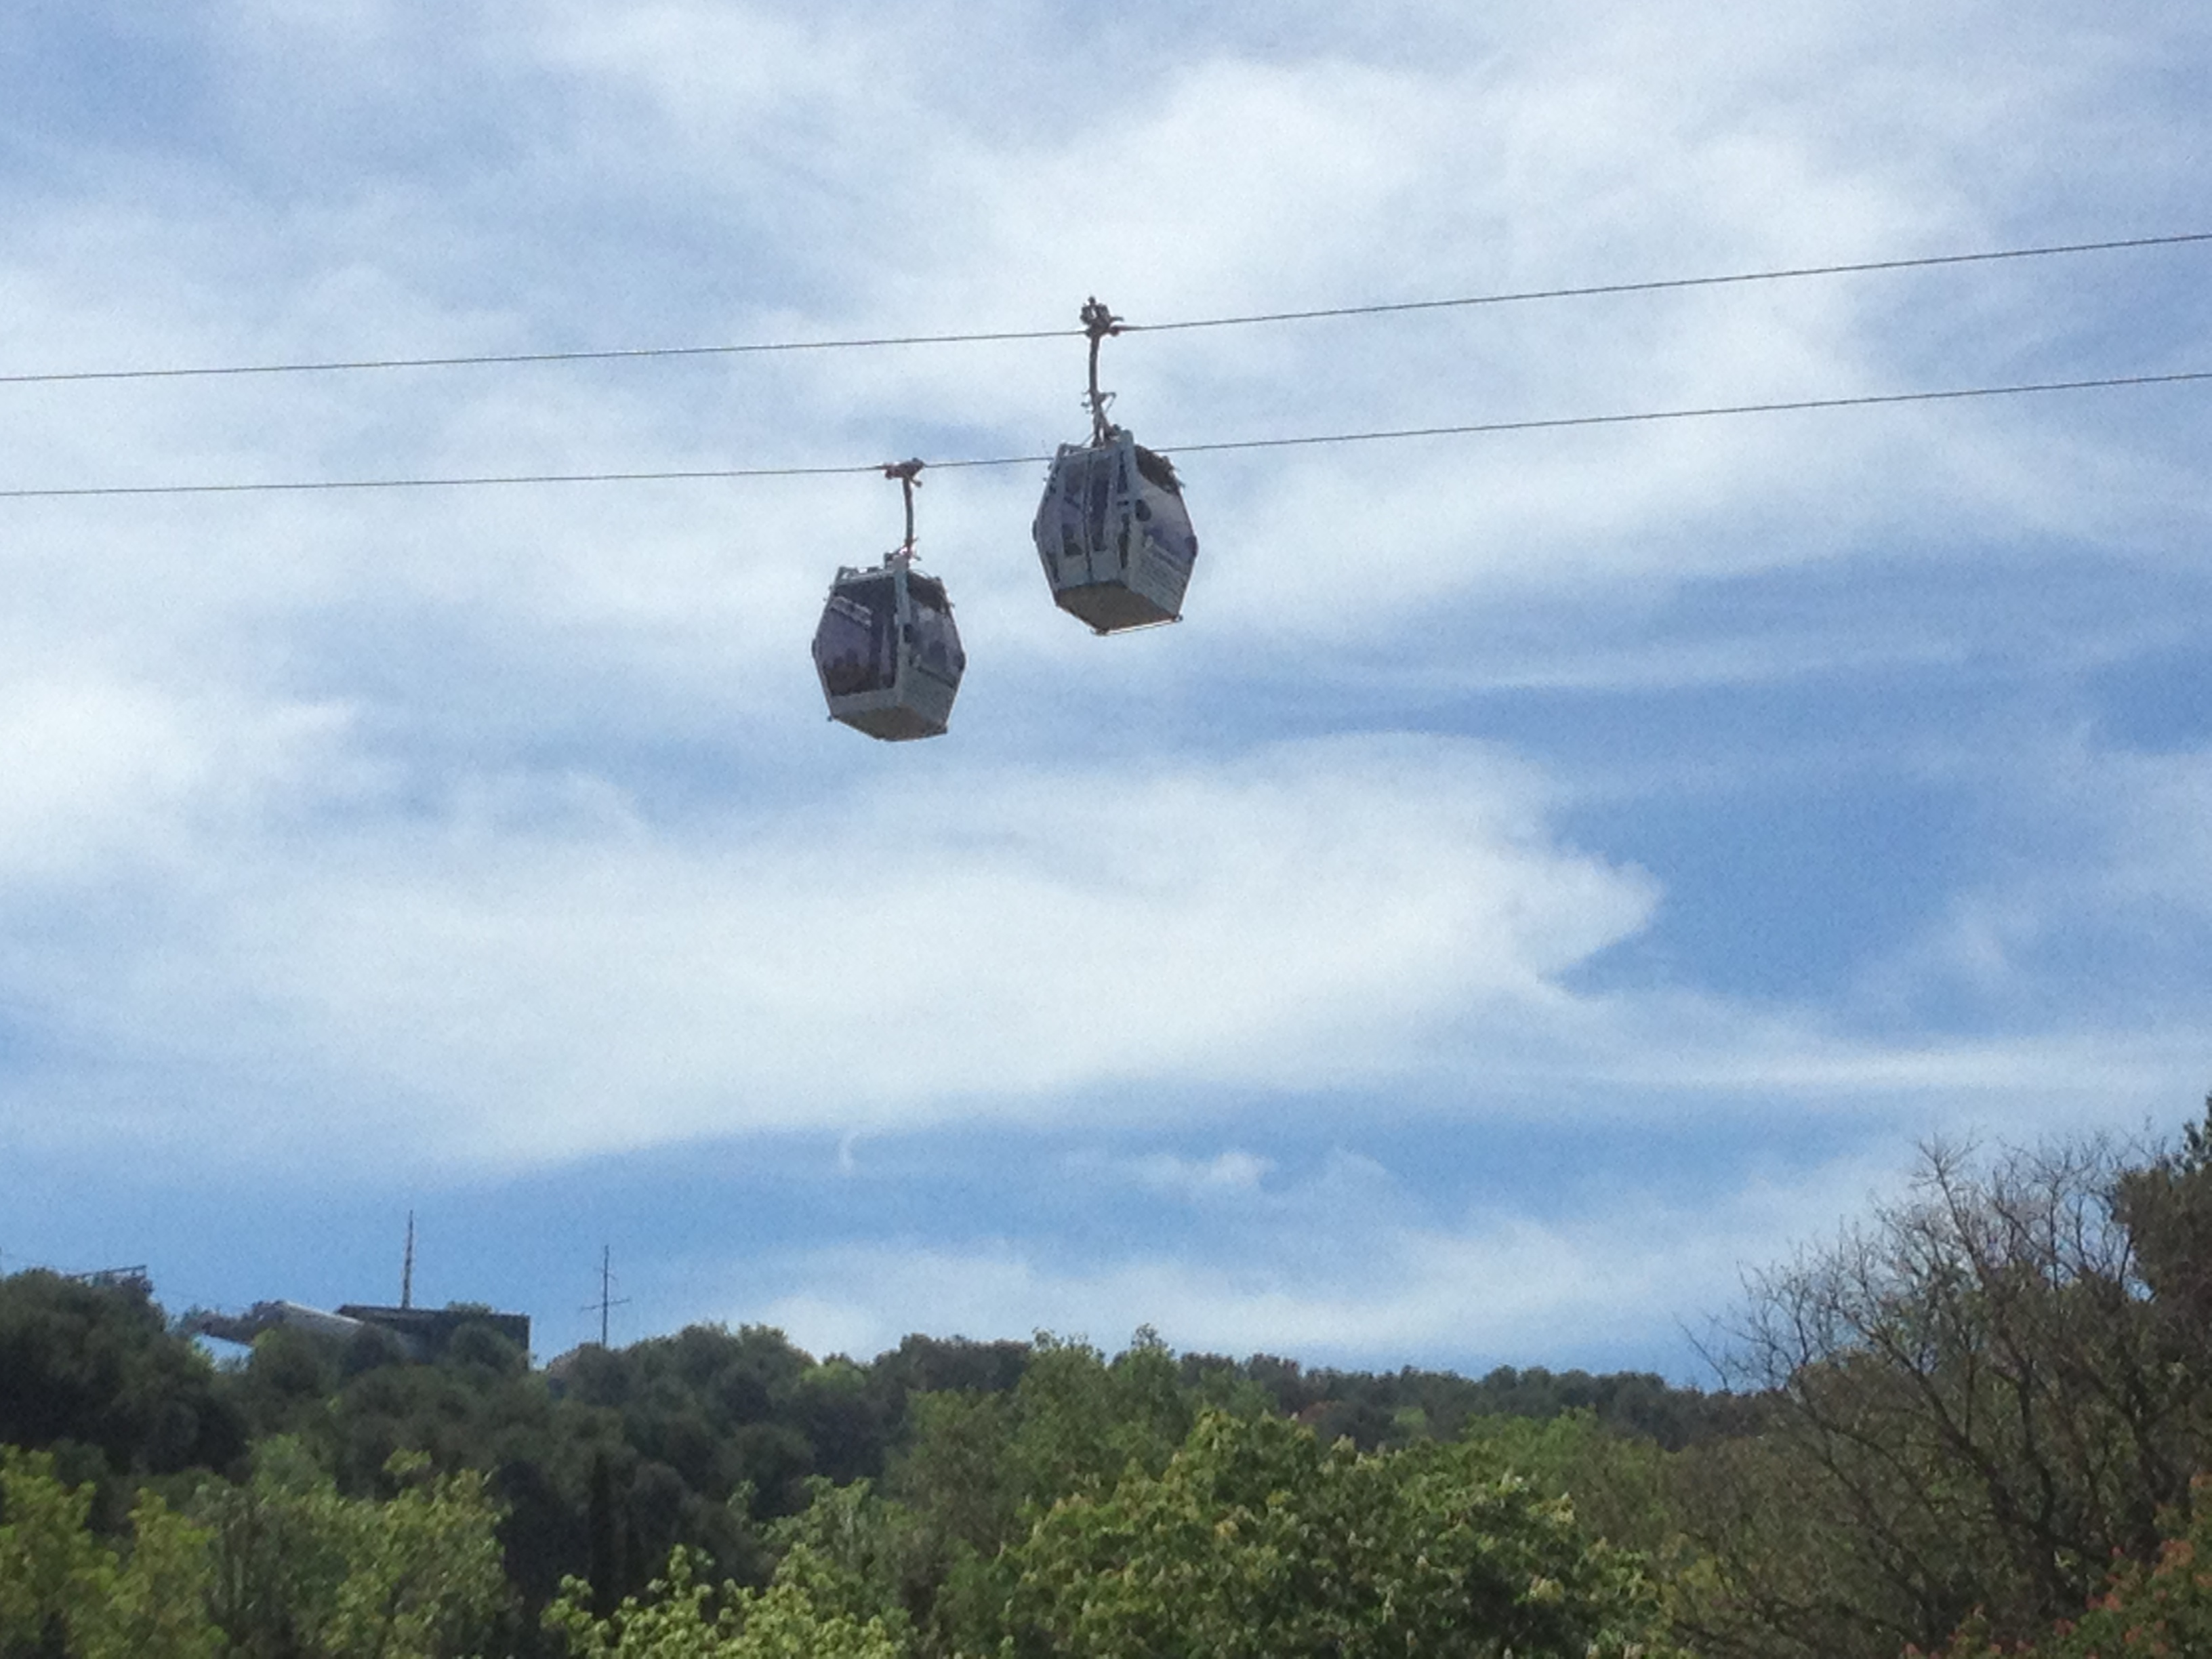 aerial tram in action from ground